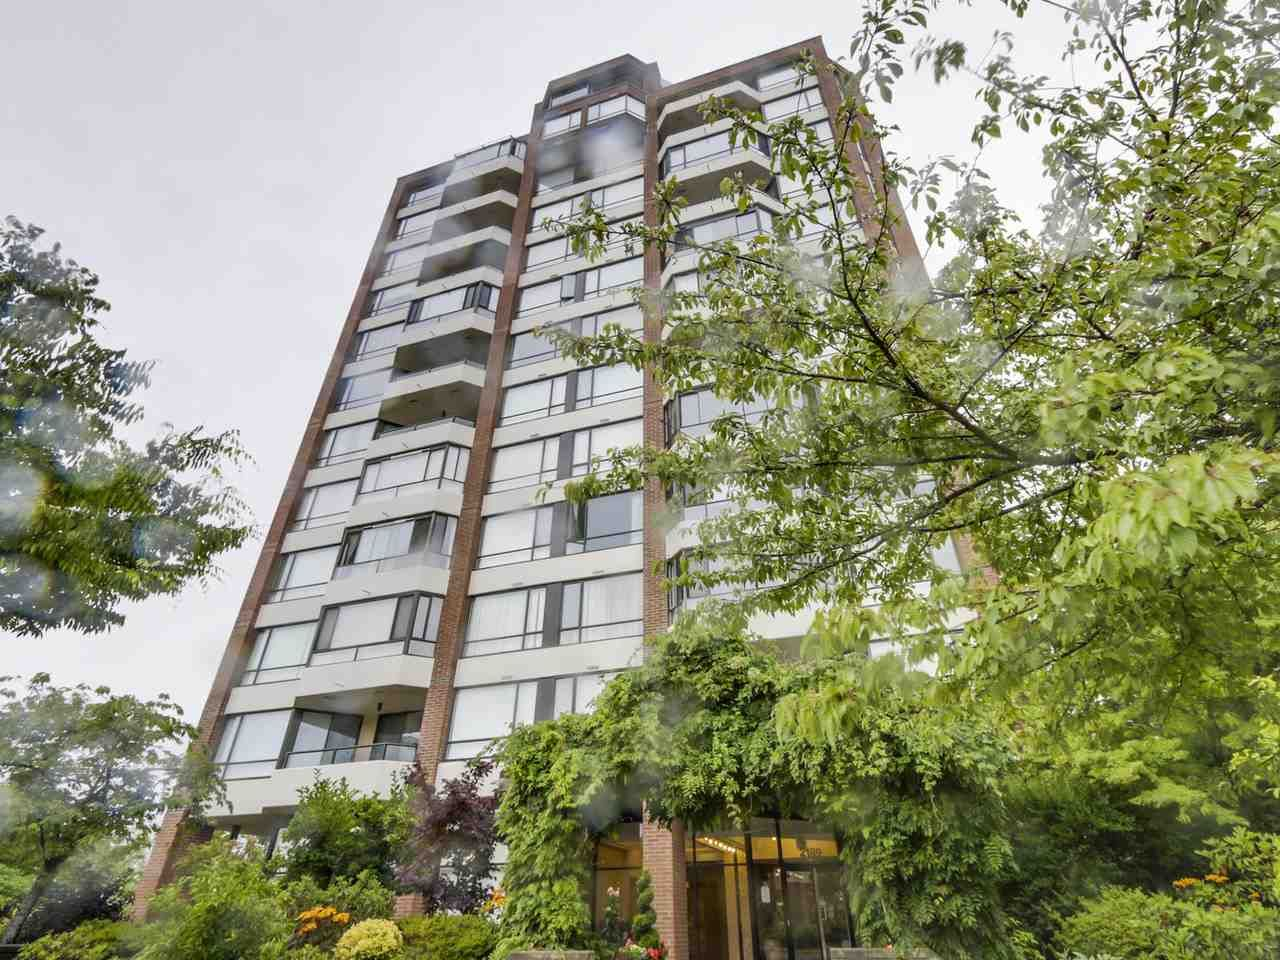 """Main Photo: 301 2189 W 42ND Avenue in Vancouver: Kerrisdale Condo for sale in """"GOVERNOR POINT"""" (Vancouver West)  : MLS®# R2098848"""